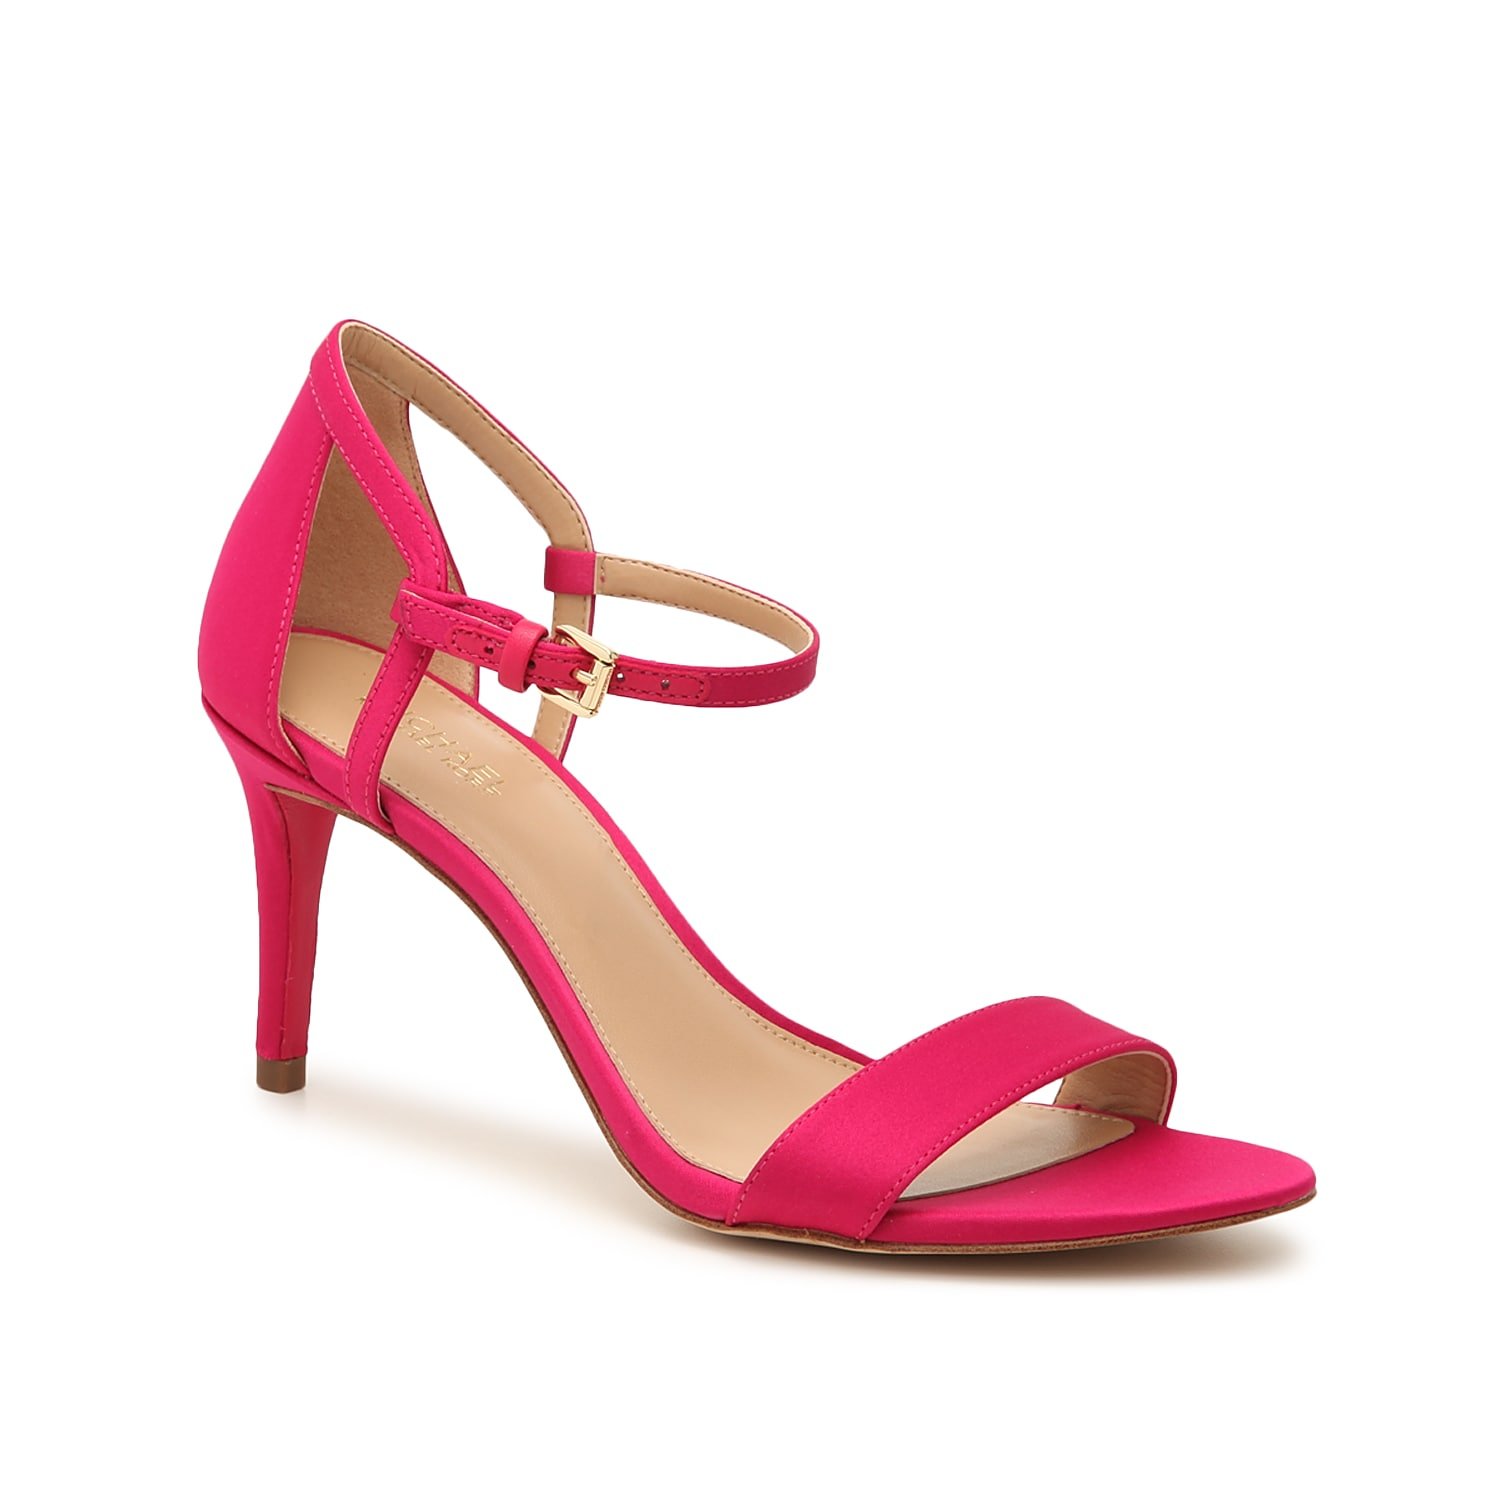 For a twist on tradition, the Michael Michael Kors Simone sandal is fashioned with an asymmetrical strap that\\\'s delicately attached by a metallic buckle.